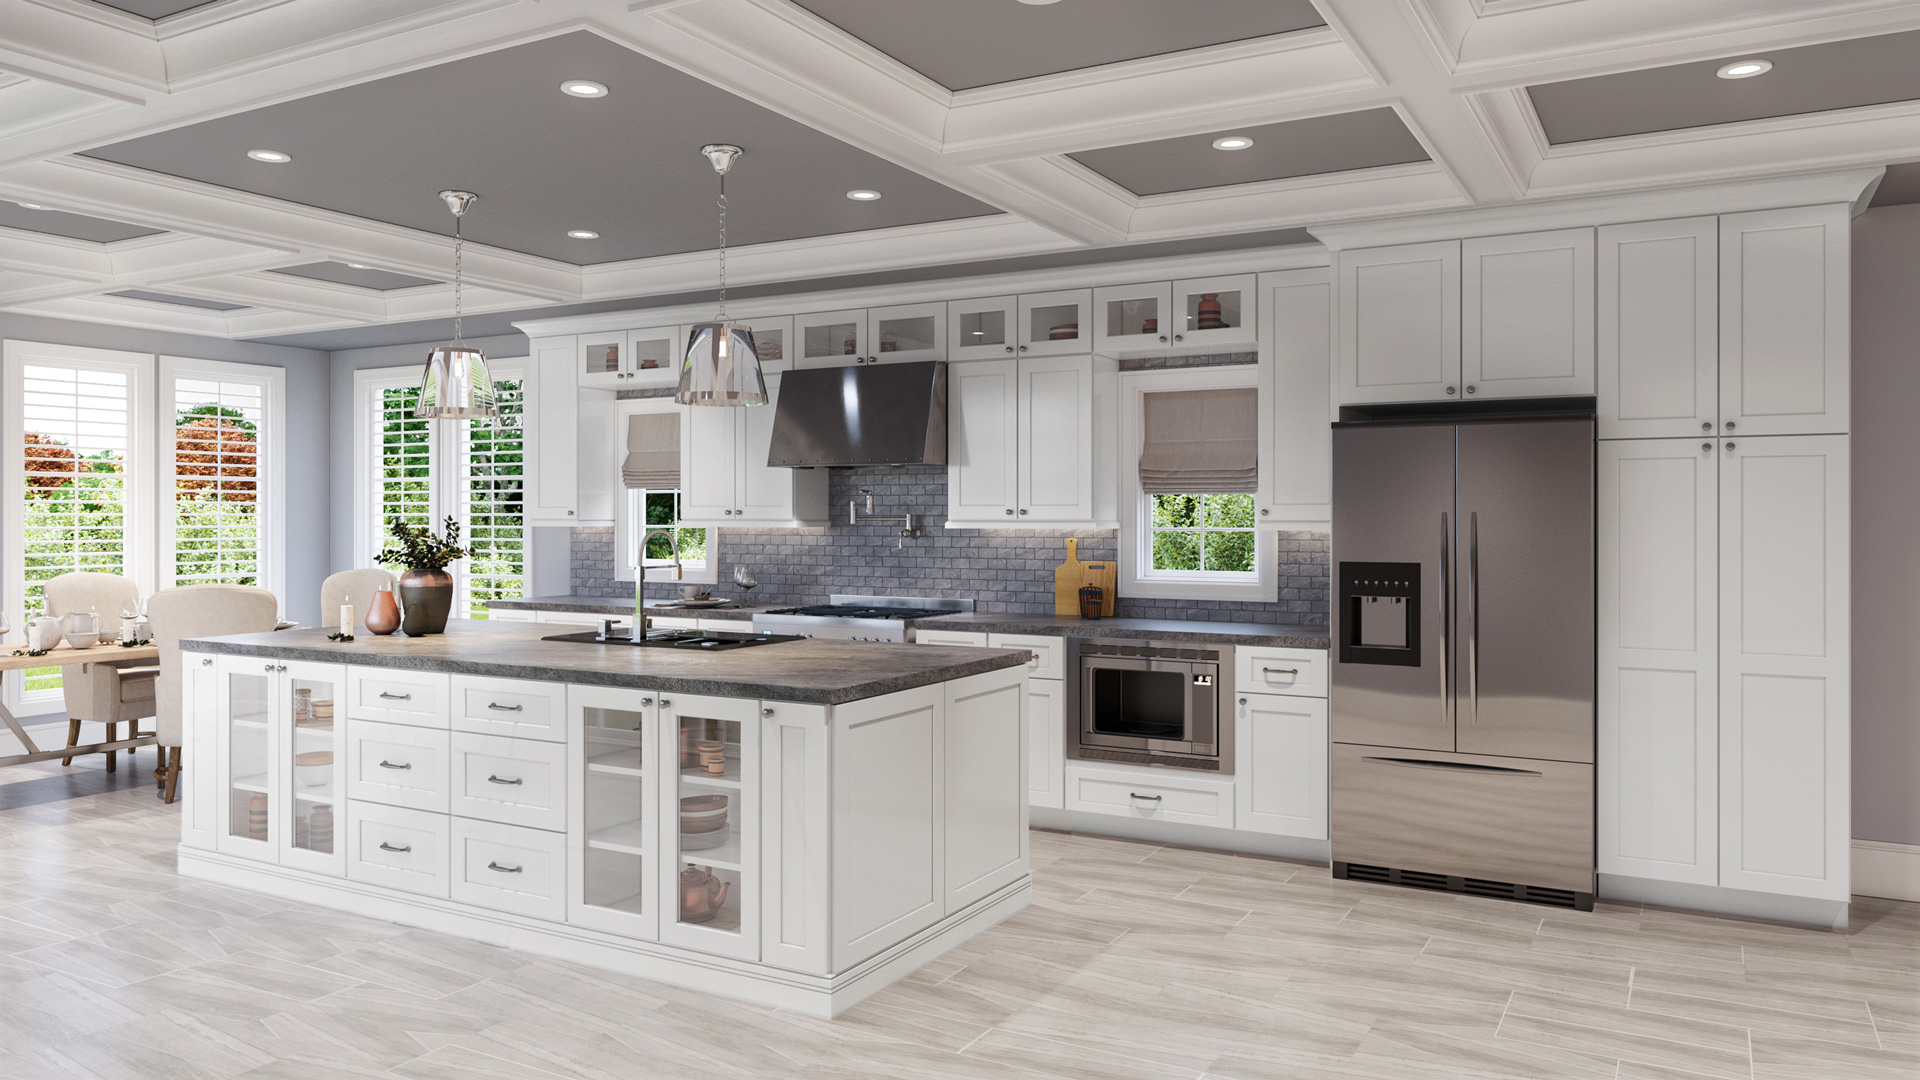 Kitchen Cabinet Color Trend This Summer 2018